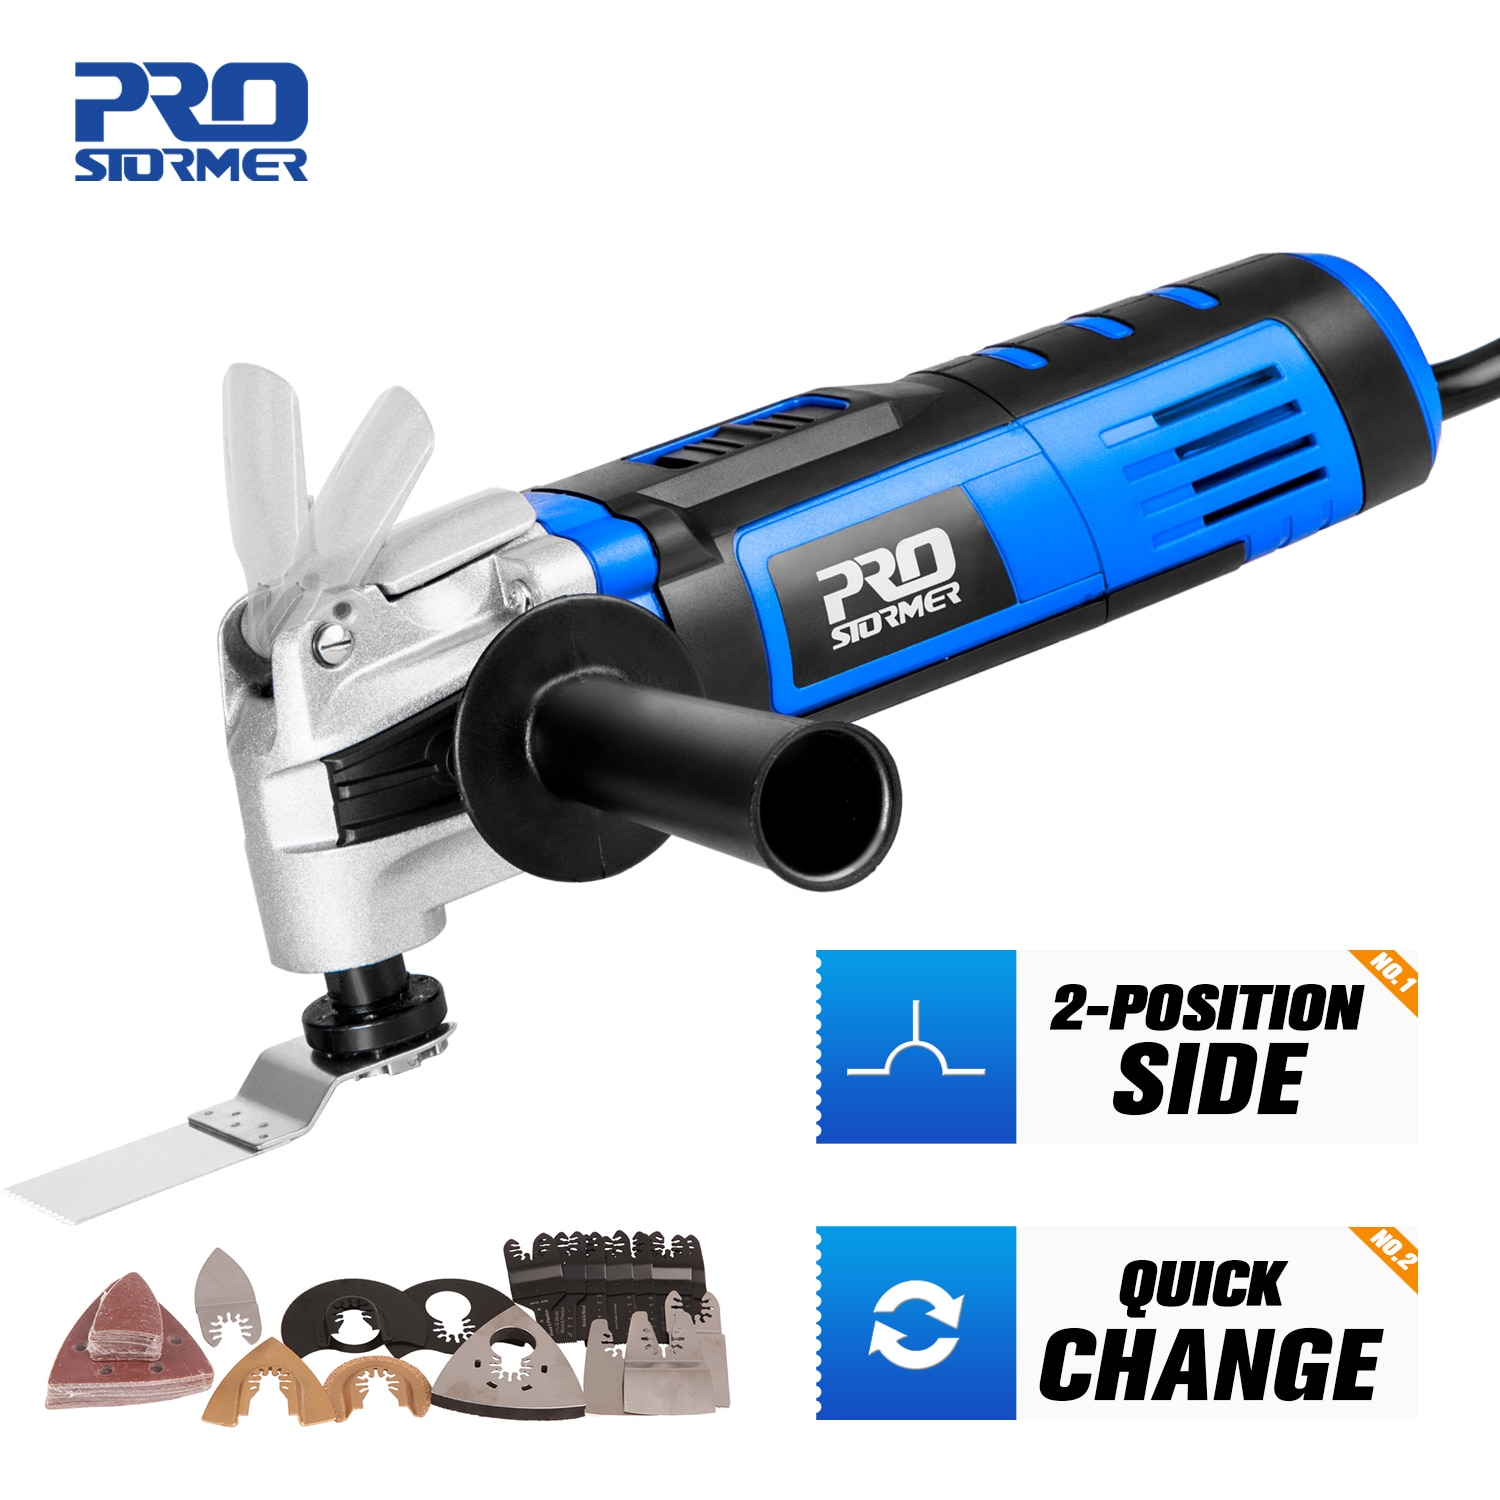 Multifunction Tool Oscillating Multi-Tools Variable Speed Renovator Electric Home Decoration Trimmer